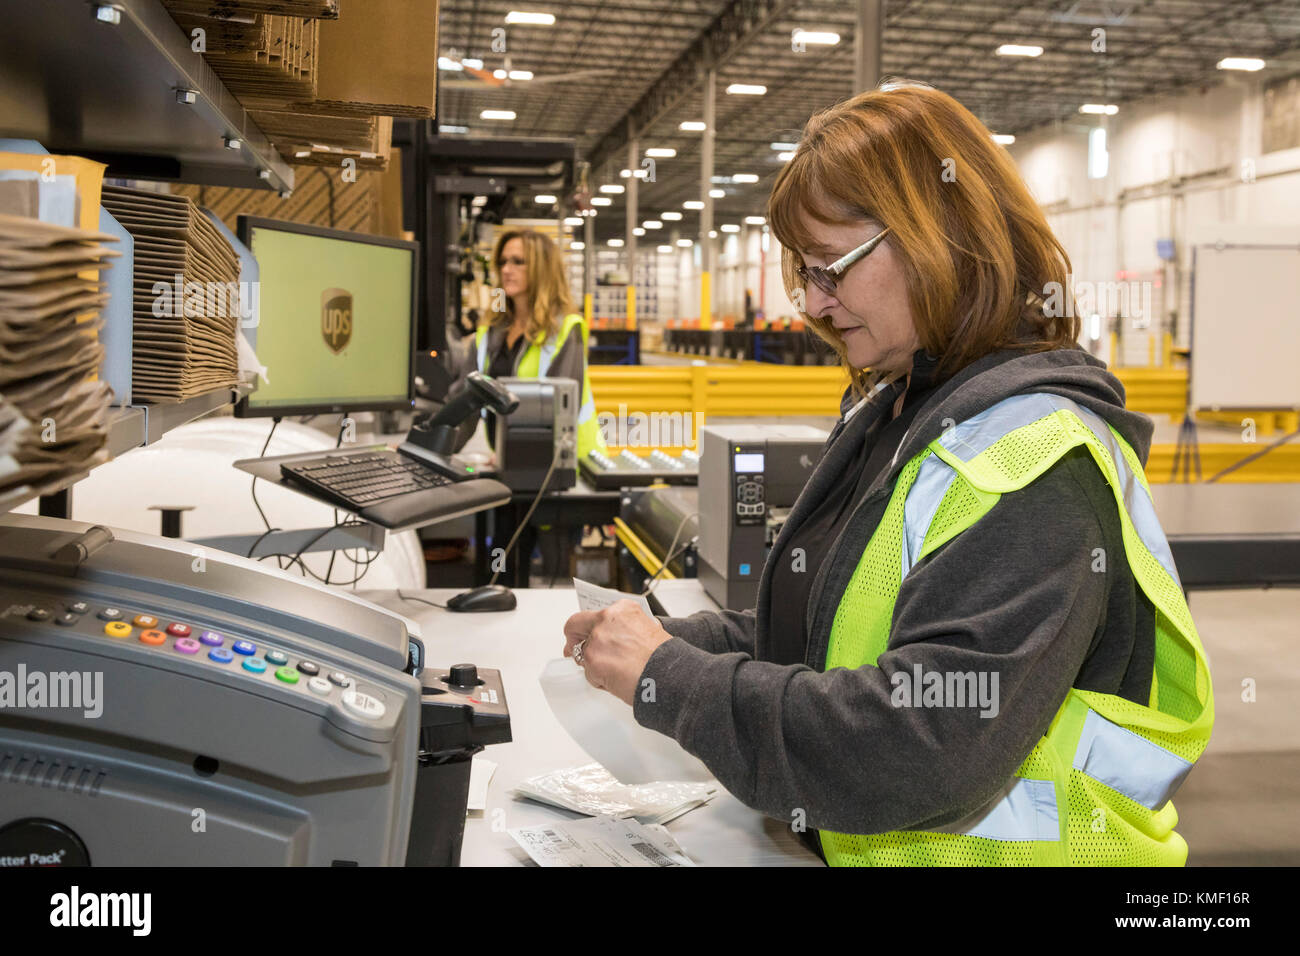 Romulus, Michigan - Workers prepare labels for UPS shipments at a Mopar auto parts distribution center. Mopar is - Stock Image